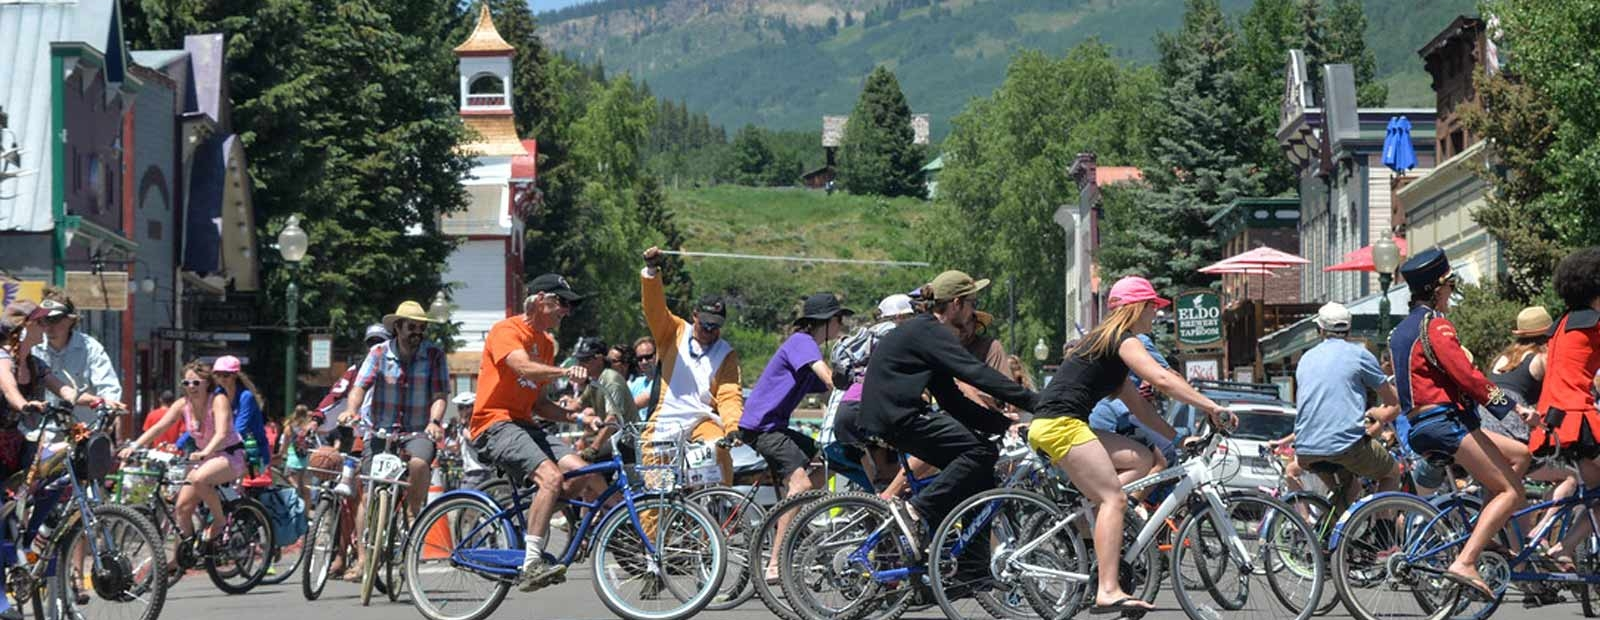 Many people biking in downtown Crested Butte